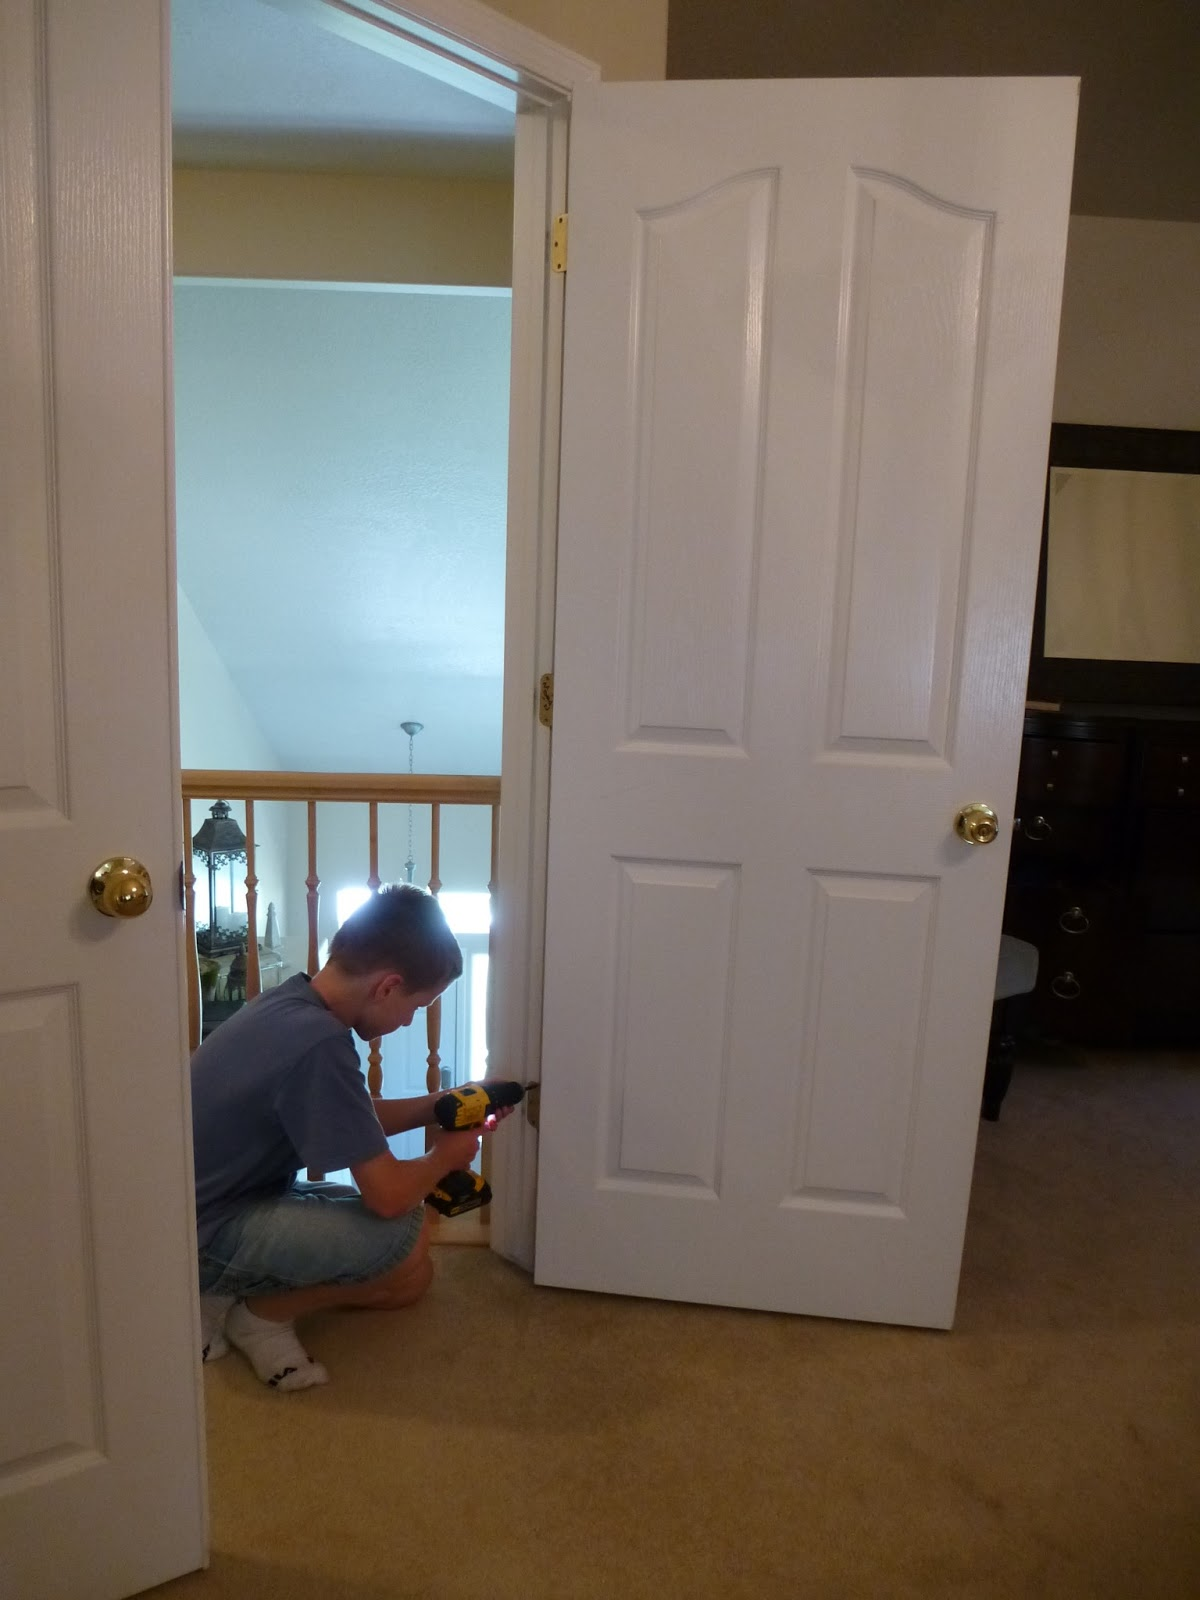 It Is Easier To Take Off The Door Knobs First, Then Take The Doors Off. If  You Are Going To Keep The Same Hinges You Can Either Tape Them Over Or  Remove ...